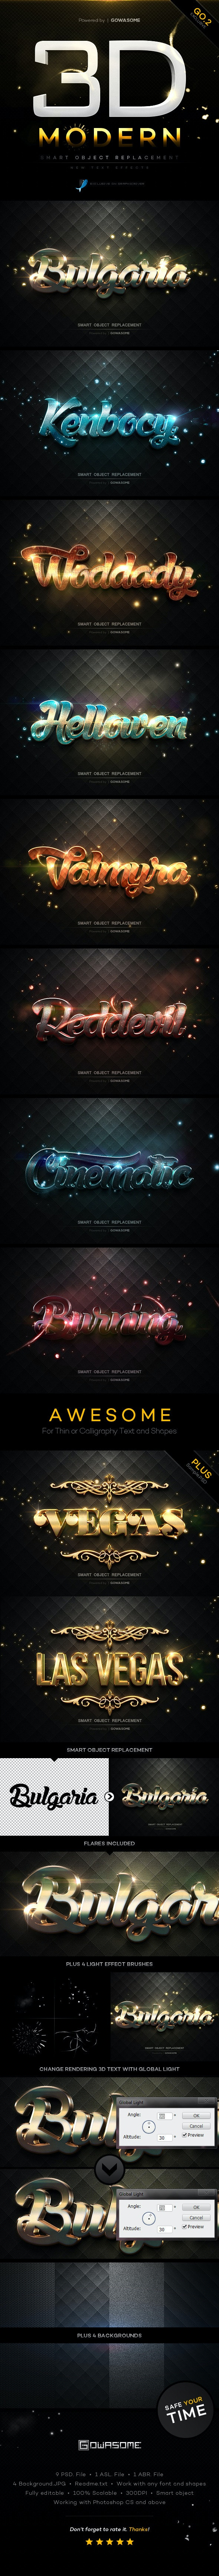 Modern 3D Text Effects GO.2 - Text Effects Styles